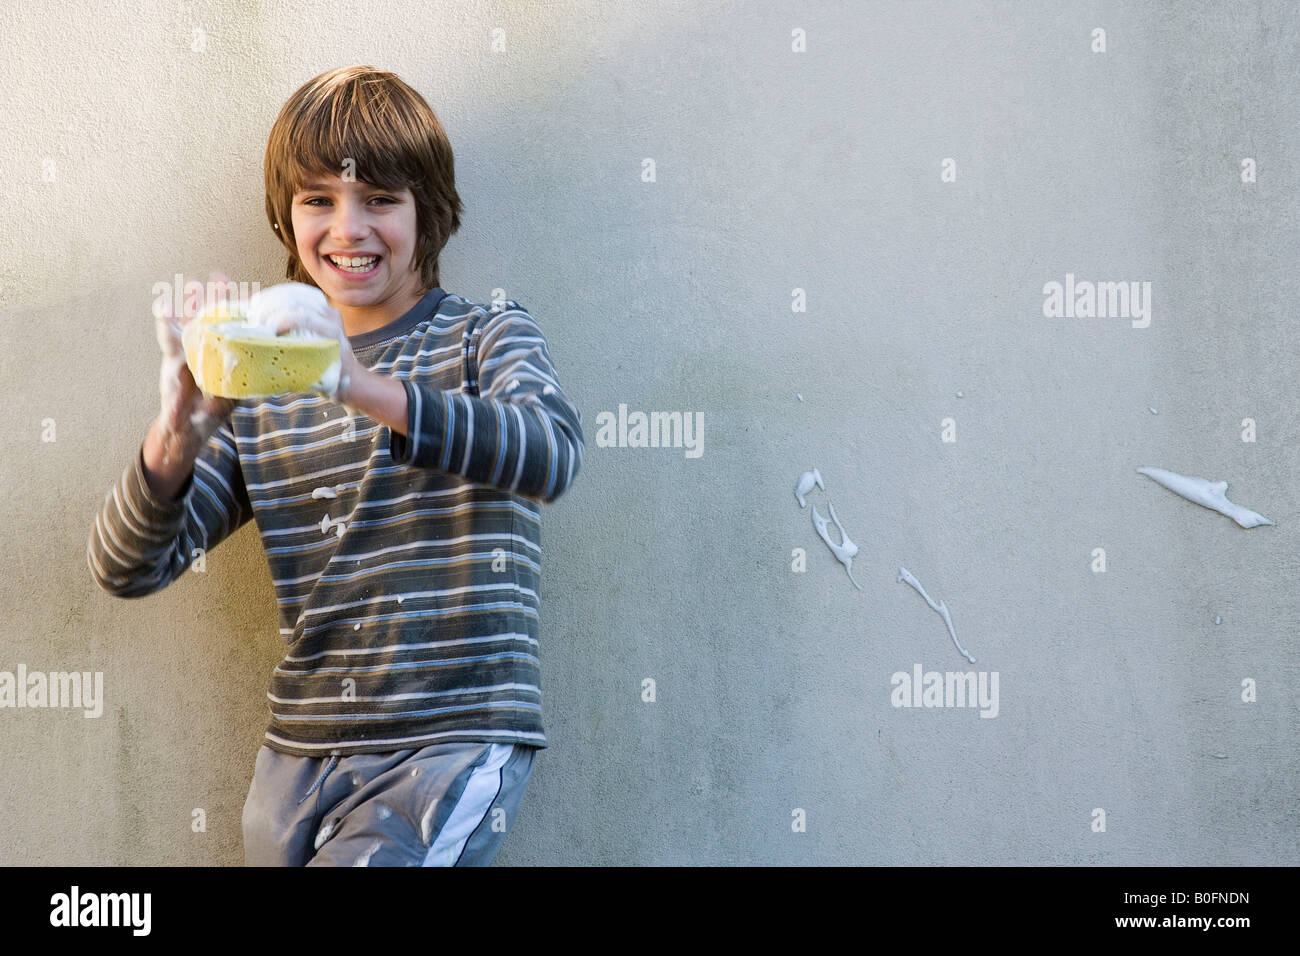 Boy playing with car sponge - Stock Image